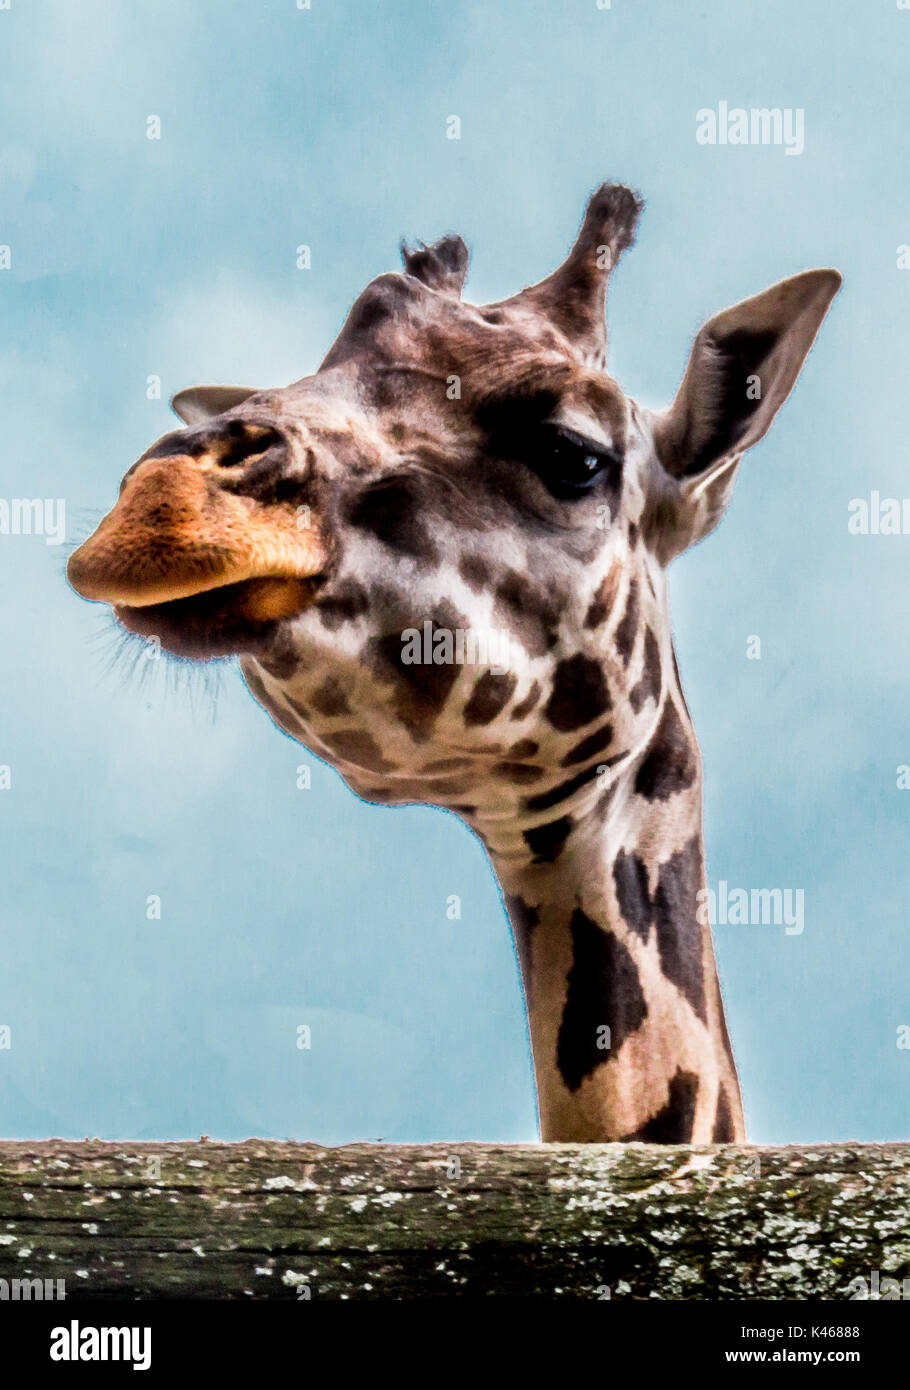 Head of a giraffe - Close view of a curious giraffe  (Giraffa camelopardalis) - Stock Image